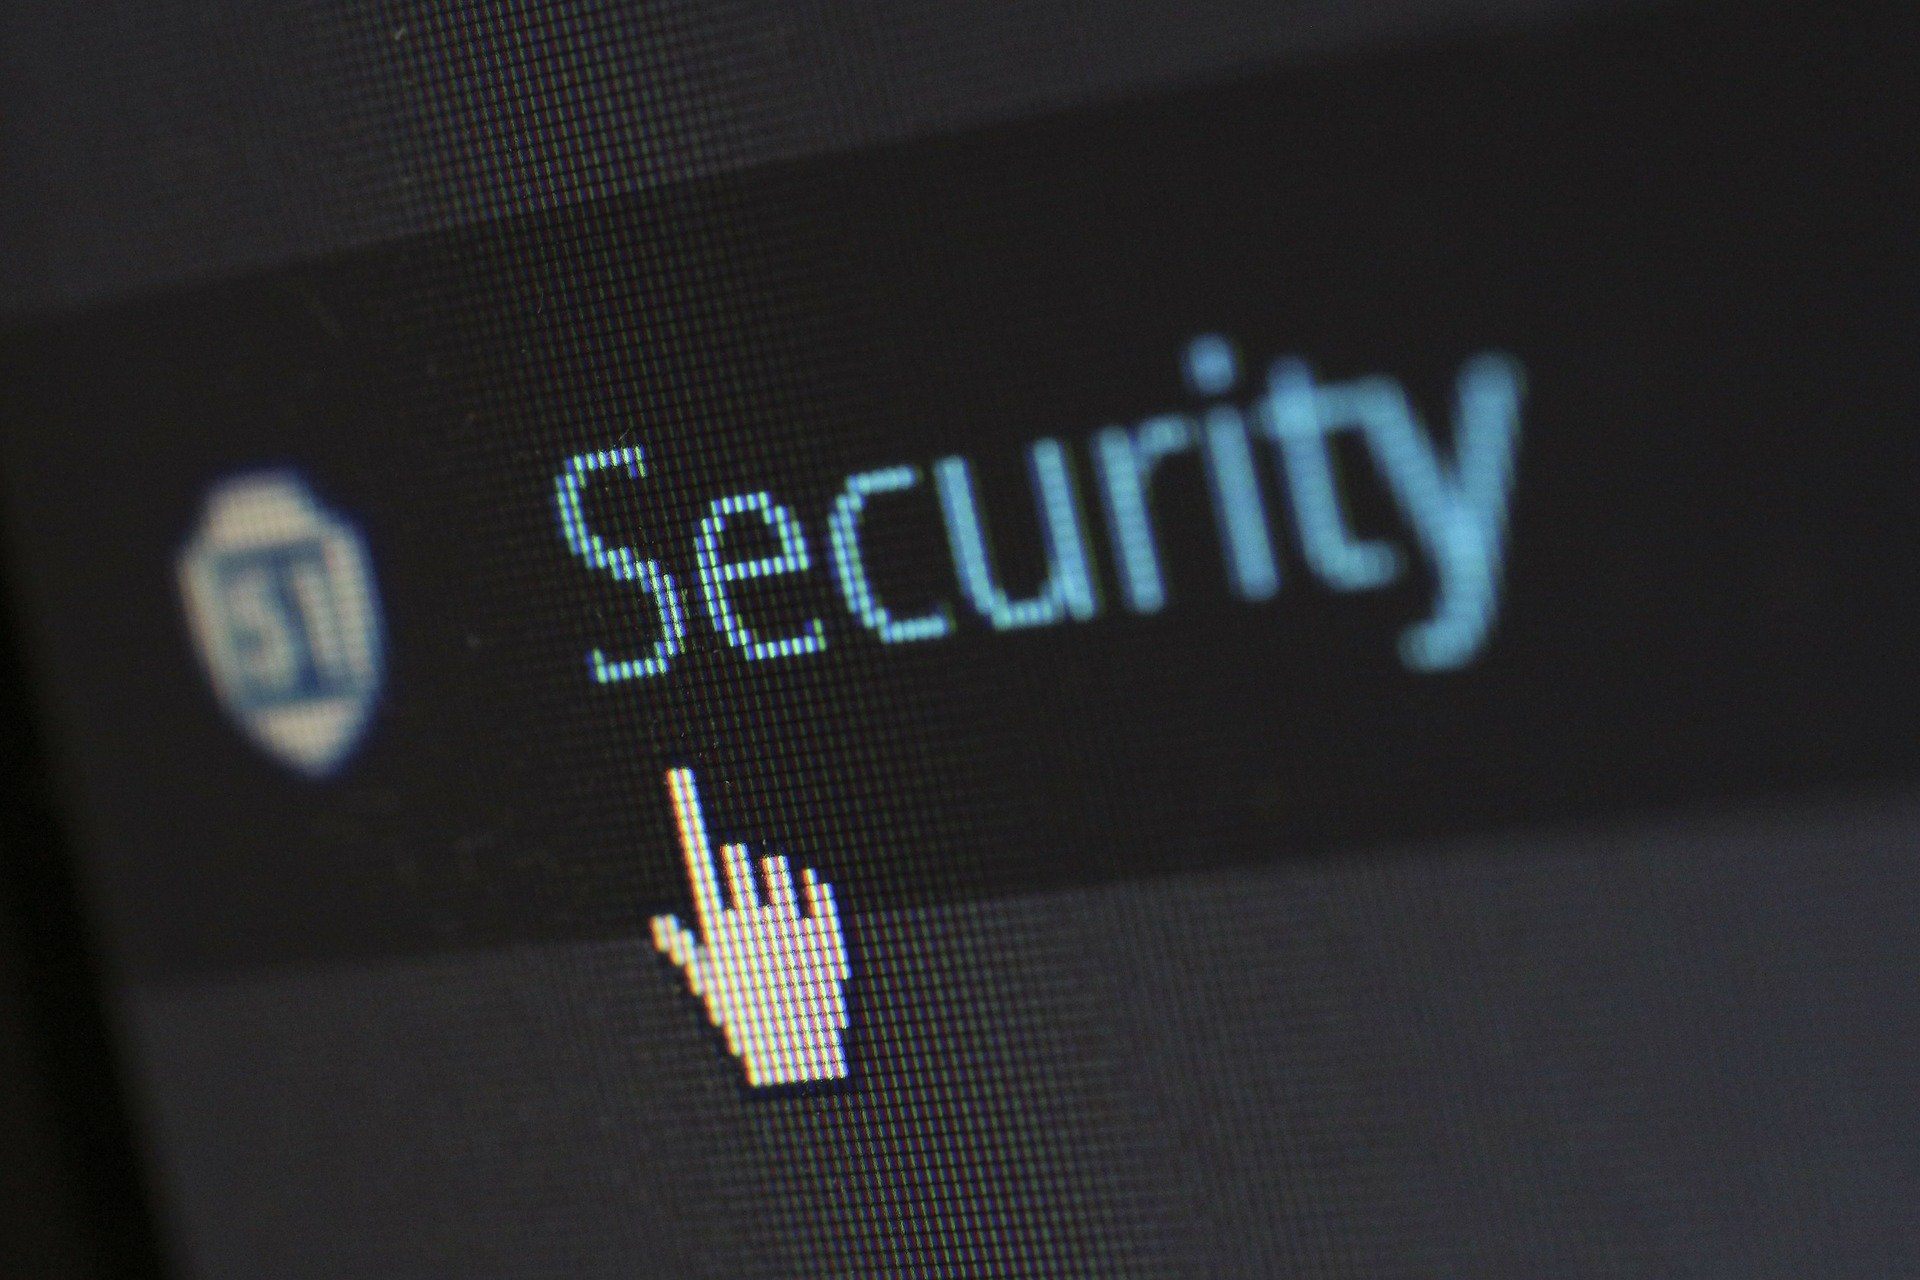 Safeguard your Email address from Web based Email harvesters